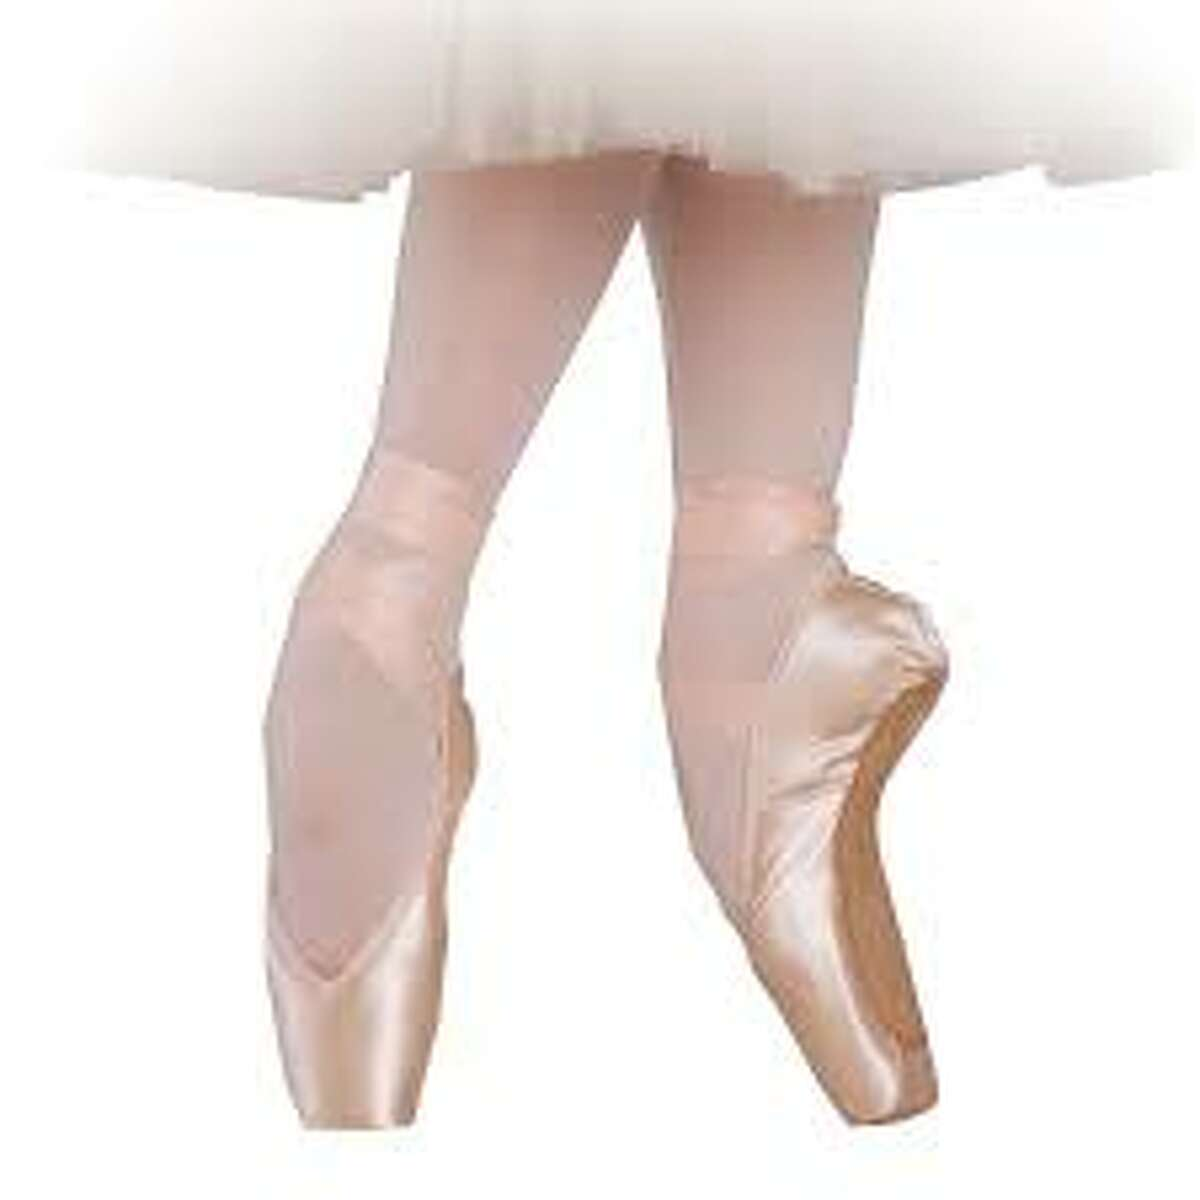 2. I was in a ballet company until I went to college. My company performed the Nutcracker at Proctors every year. I was also a competitive figure skater.